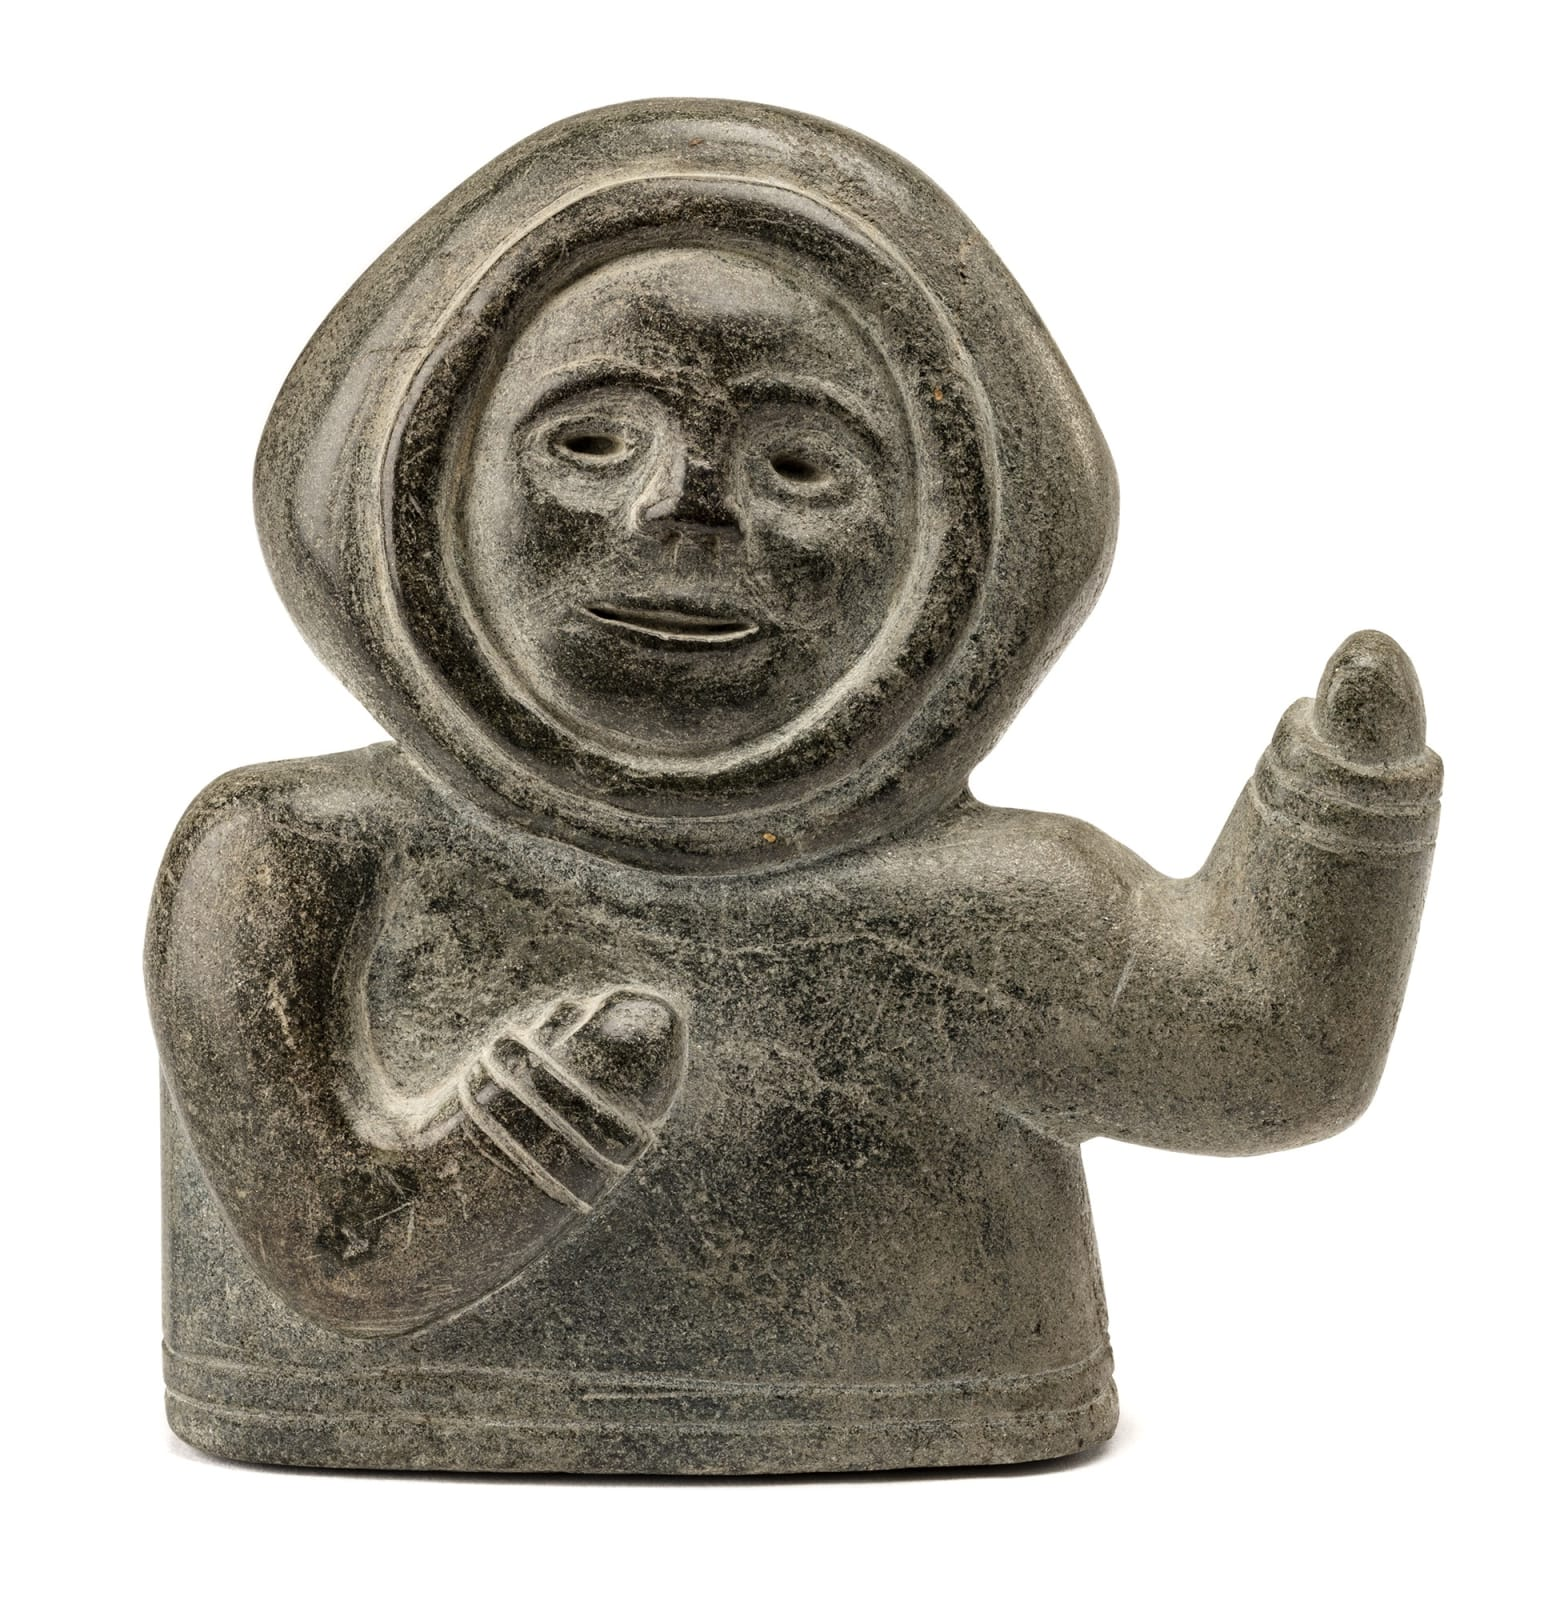 Lot 23 Possibly NIVIAQSI (NIVIAKSIAK) (1908-1959) m., KINNGAIT (CAPE DORSET) Waving Boy, mid-late 1950s stone, 4.75 x 4.75 x 1.5 in (12.1 x 12.1 x 3.8 cm) Estimate: $1,200⁠ — $1,800 PRICE REALIZED: $1080